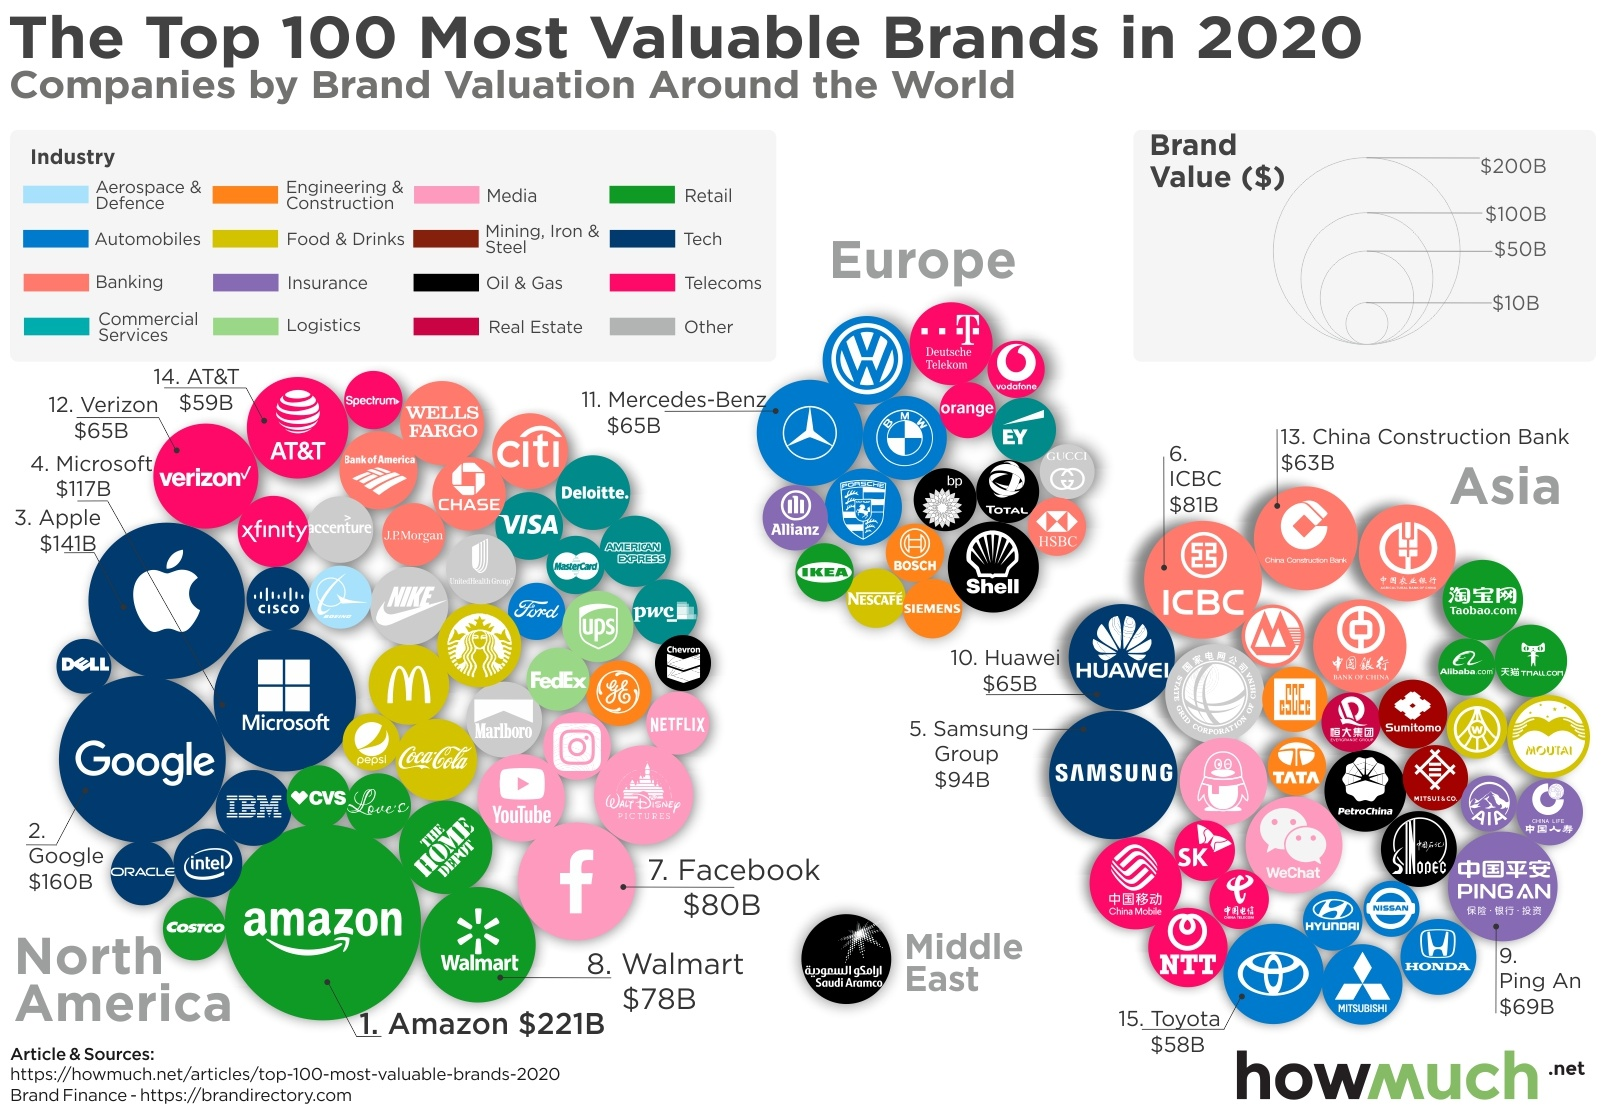 Most Valuable Brands in the World in 2020